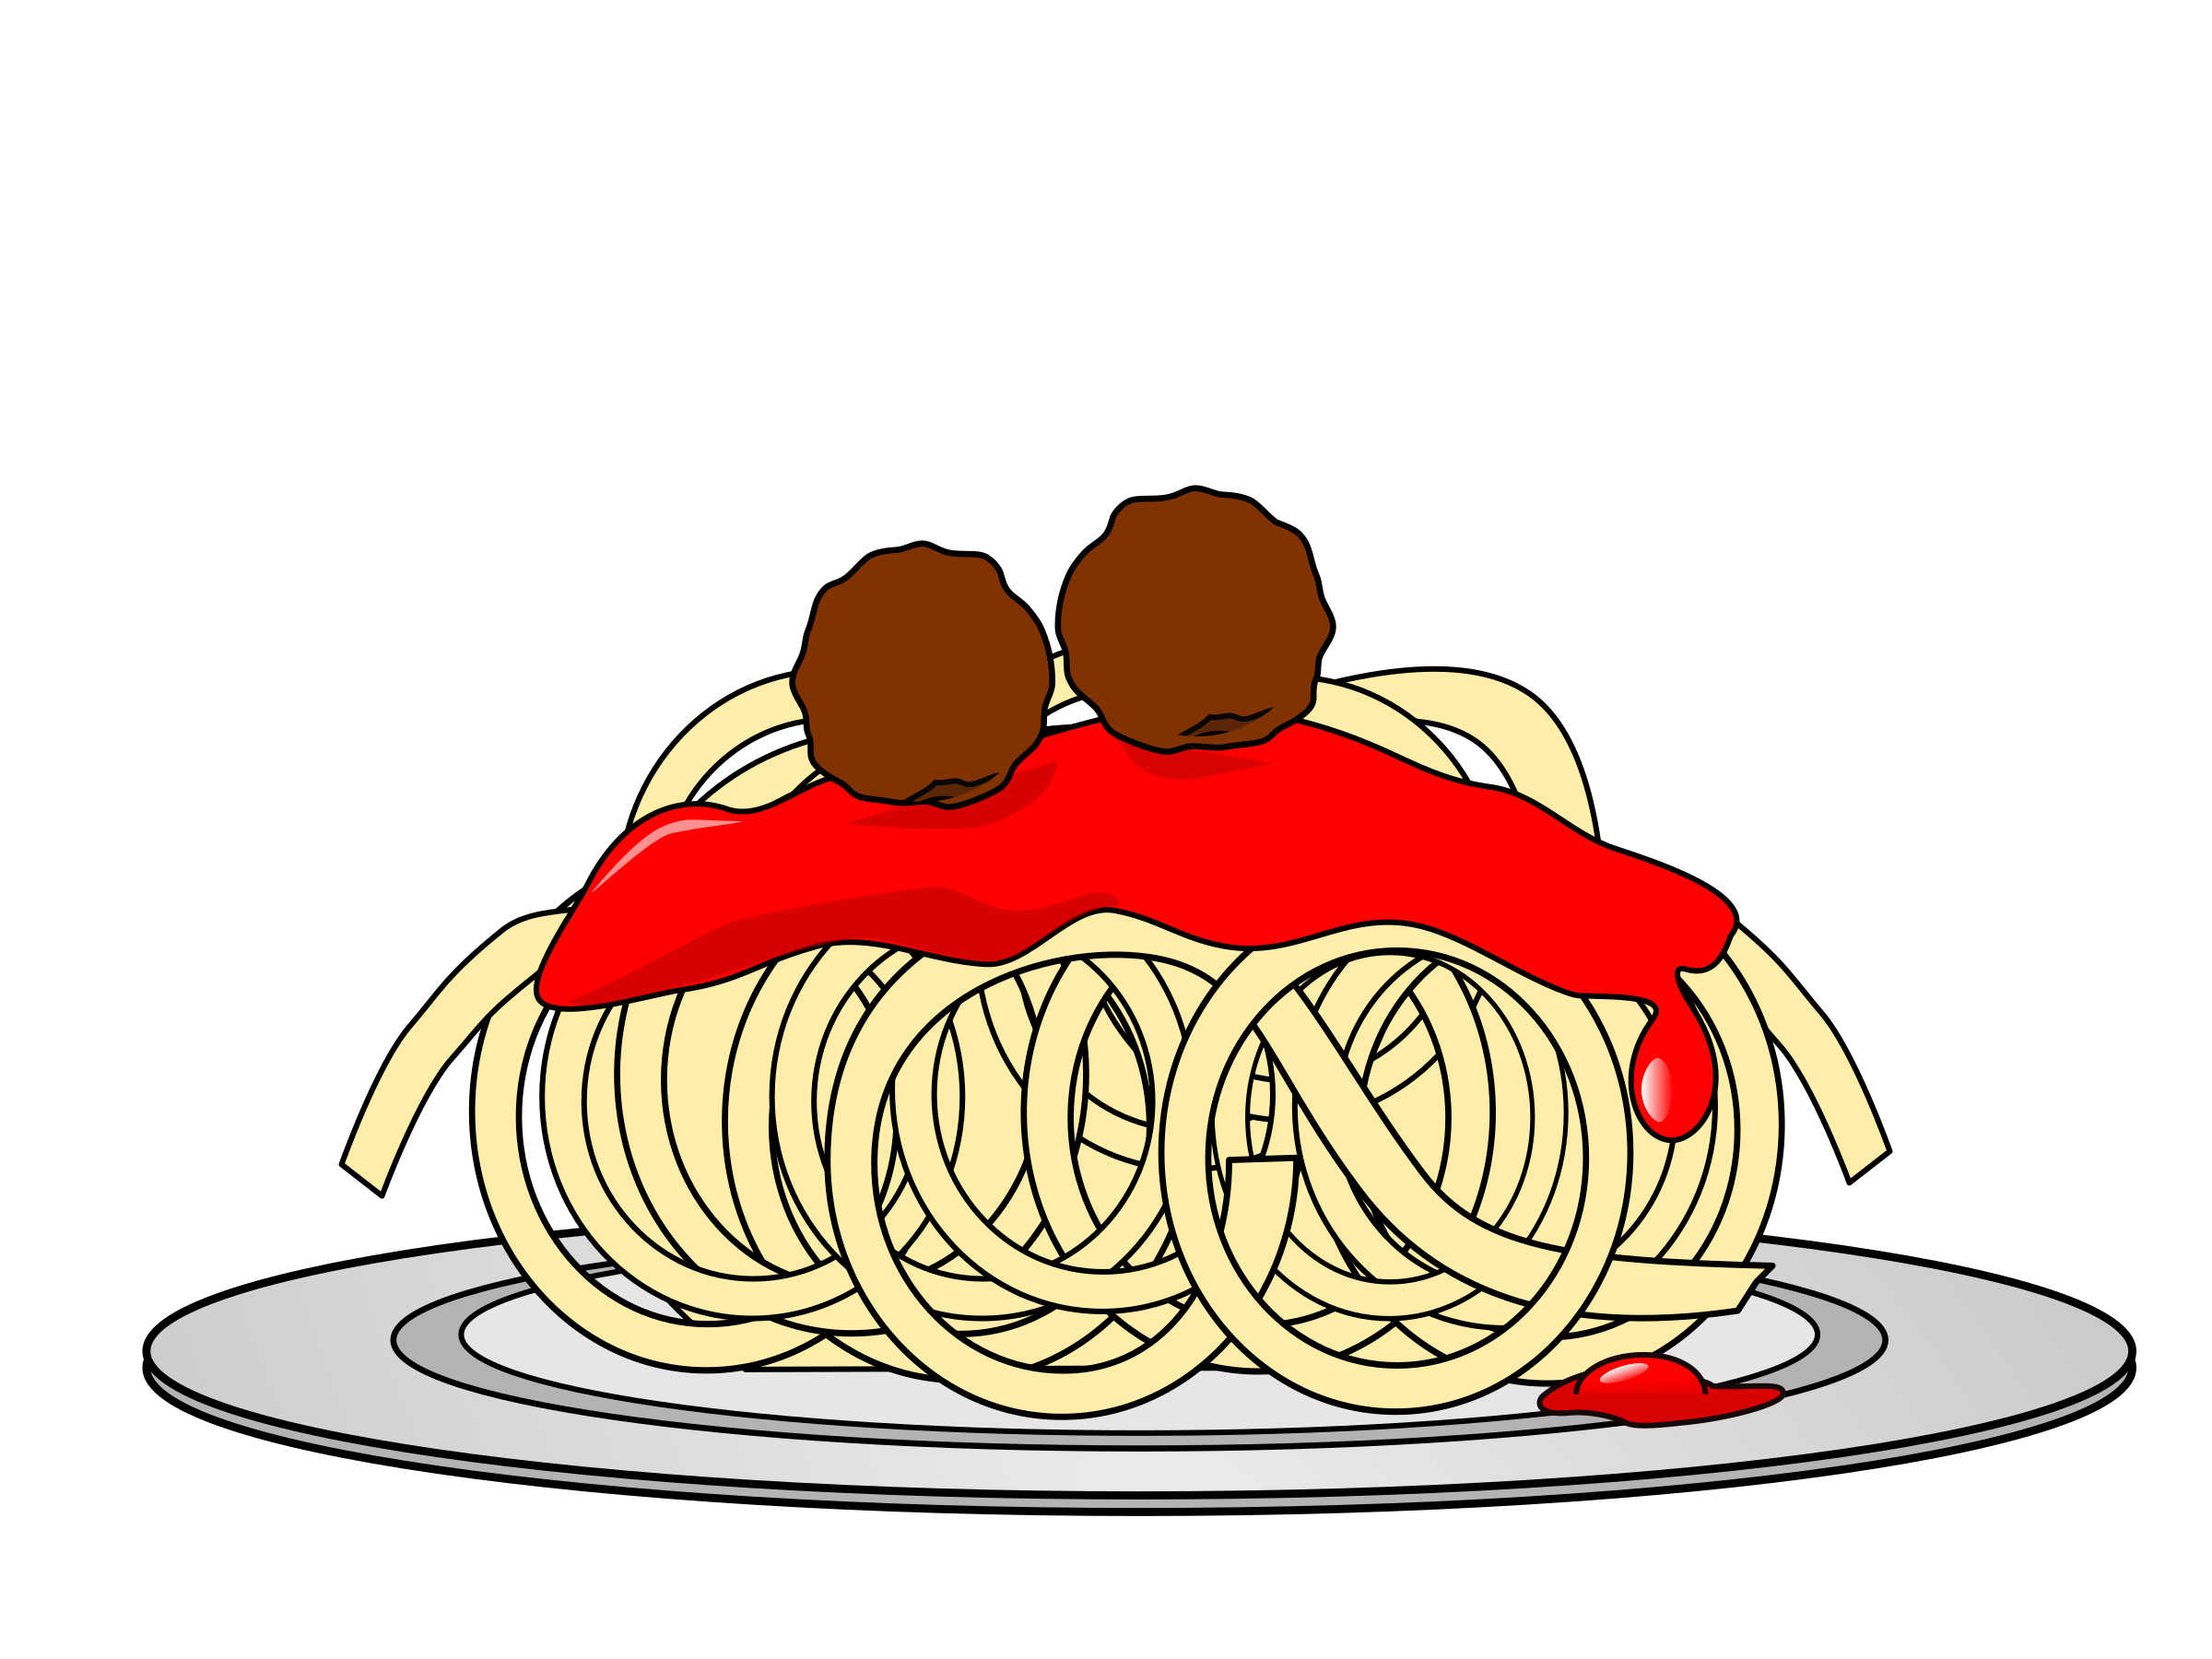 Plate Of Spaghetti And Meatballs Clipart | www.imgkid.com ...